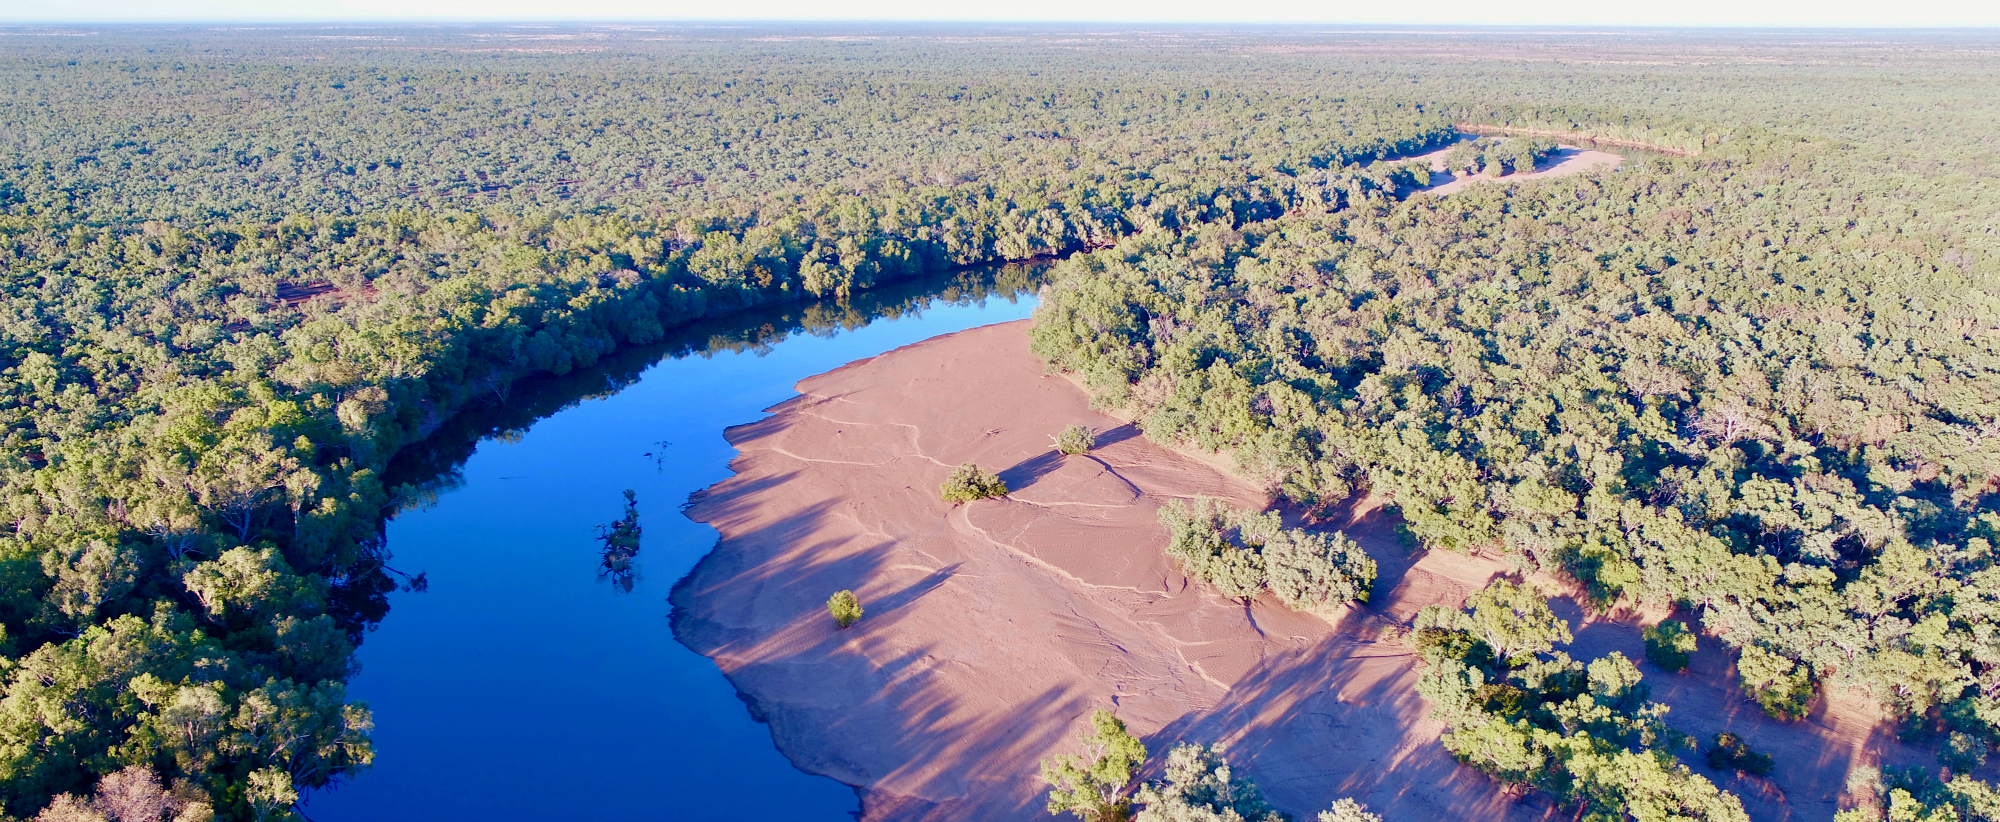 Protecting the Kimberley's Fitzroy River|SCIENCE STATEMENT OF SUPPORT